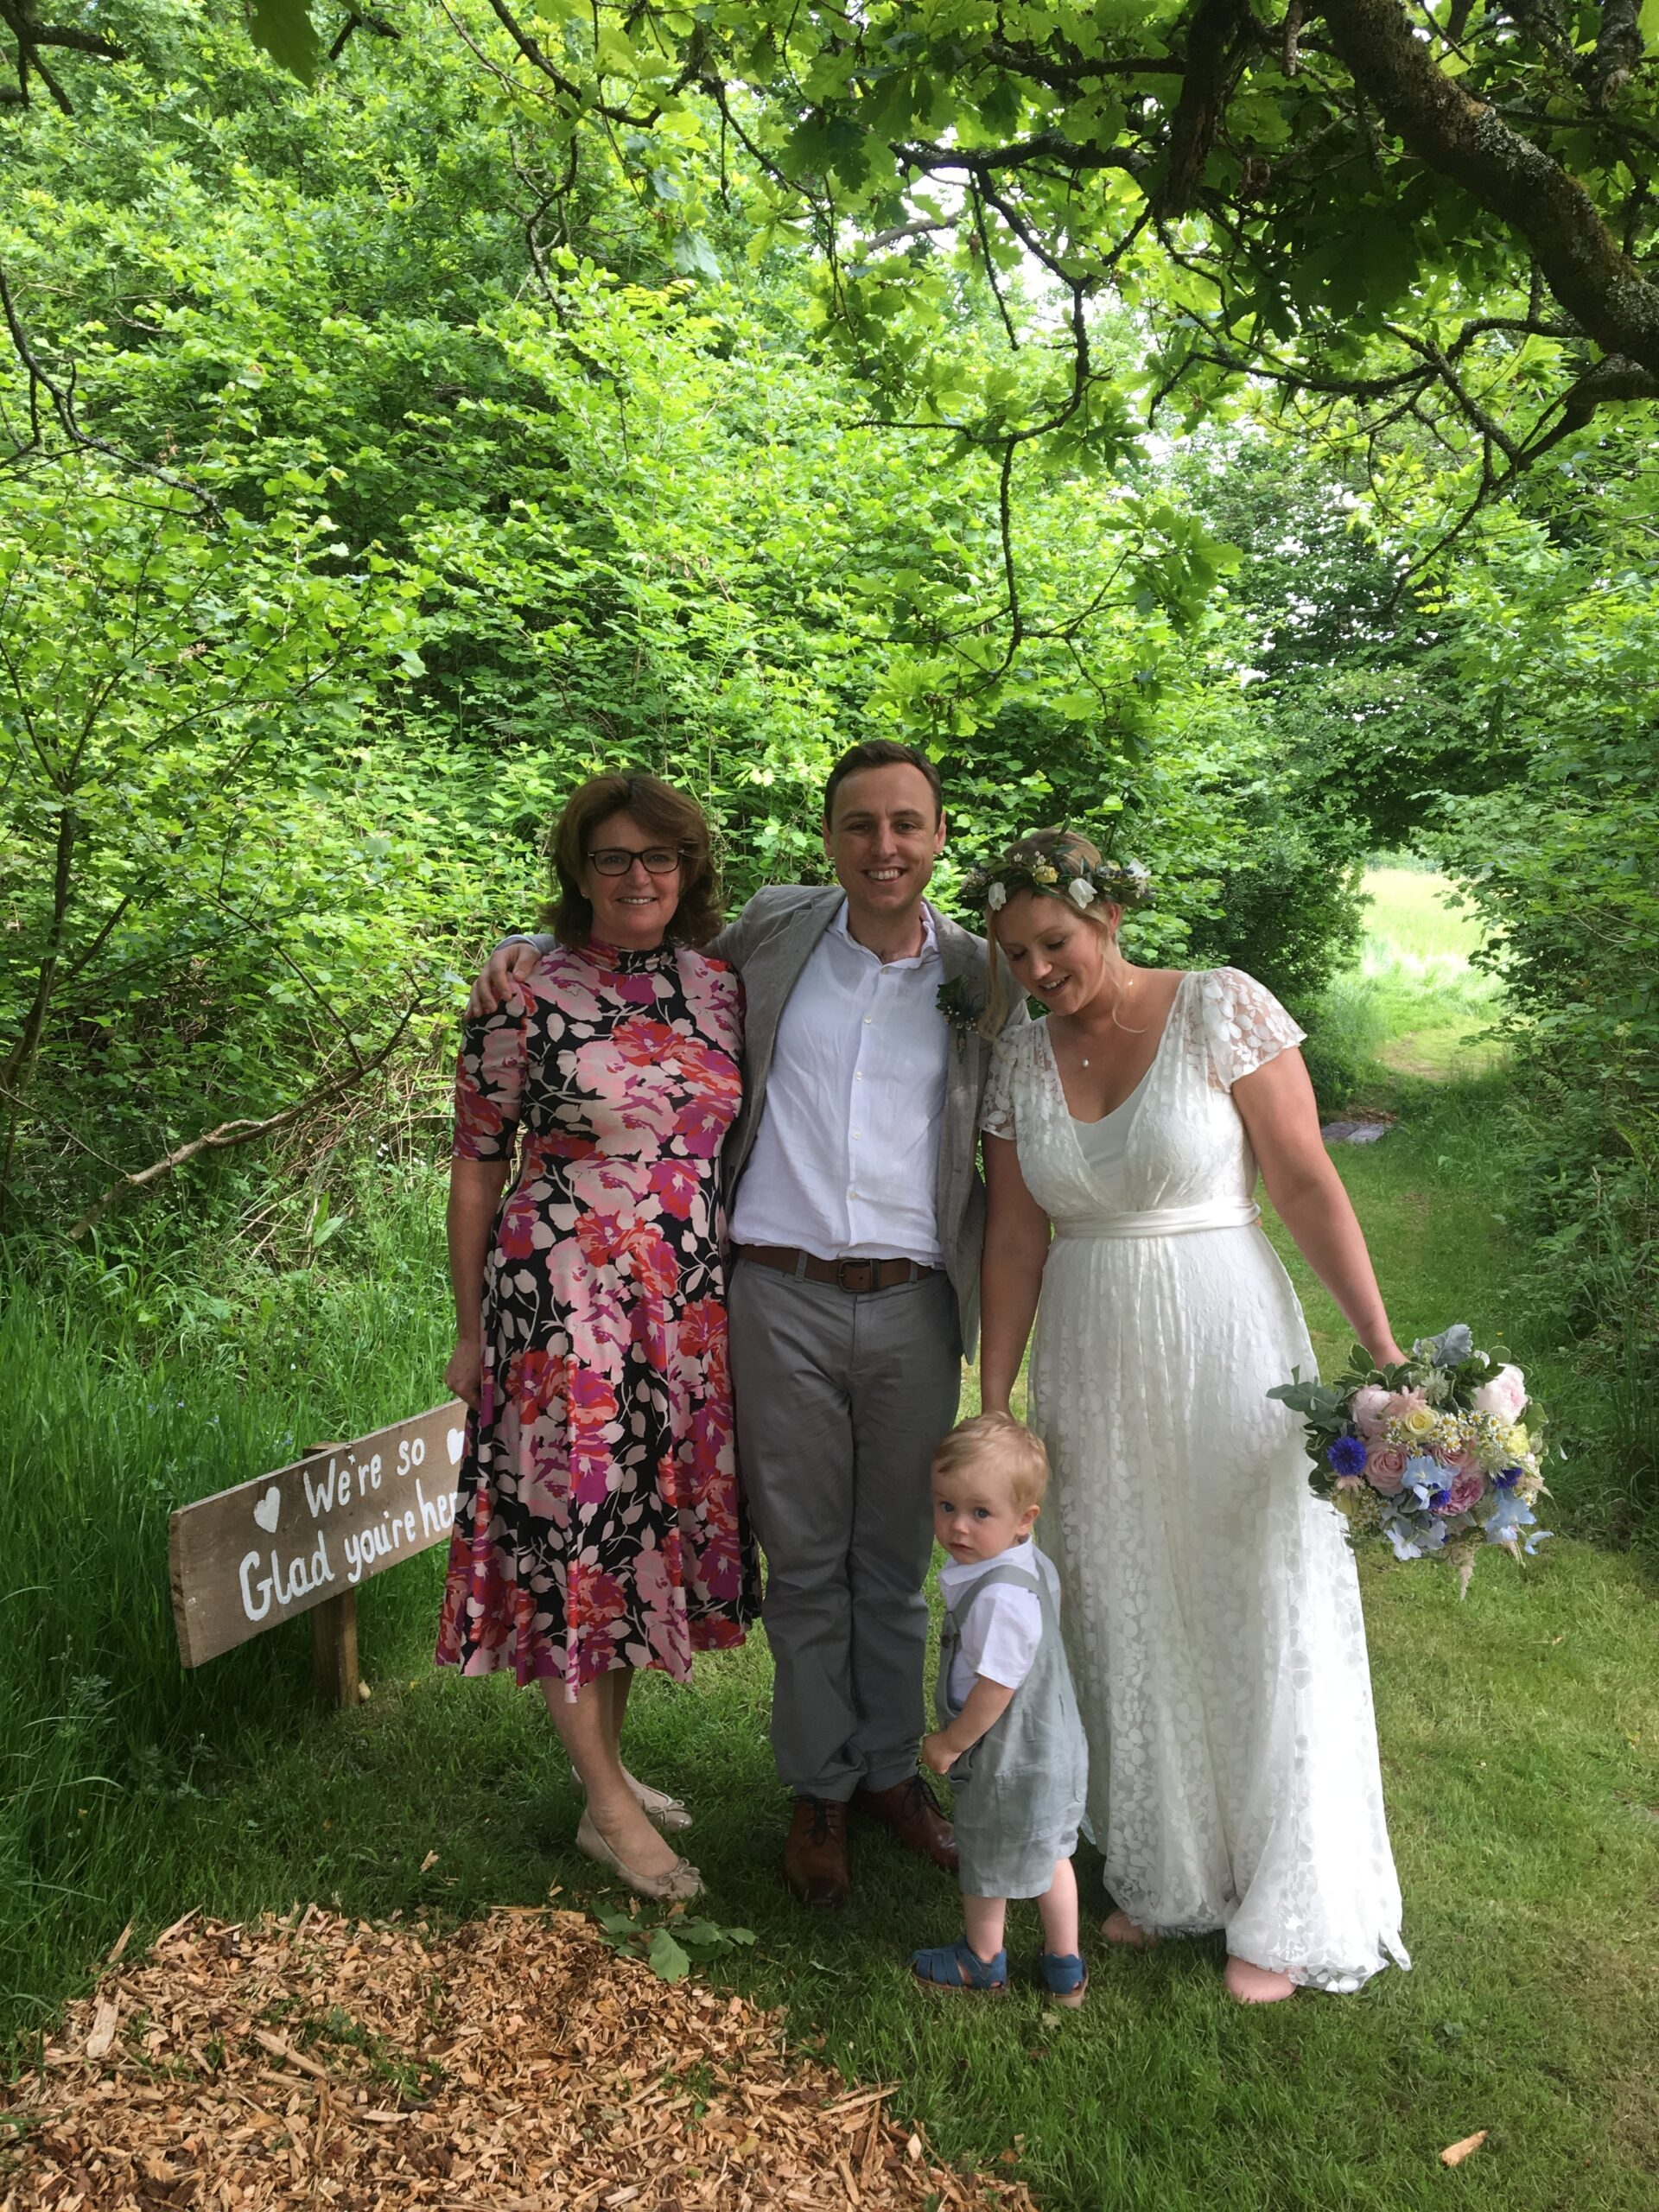 10 top reasons to book a wedding celebrant